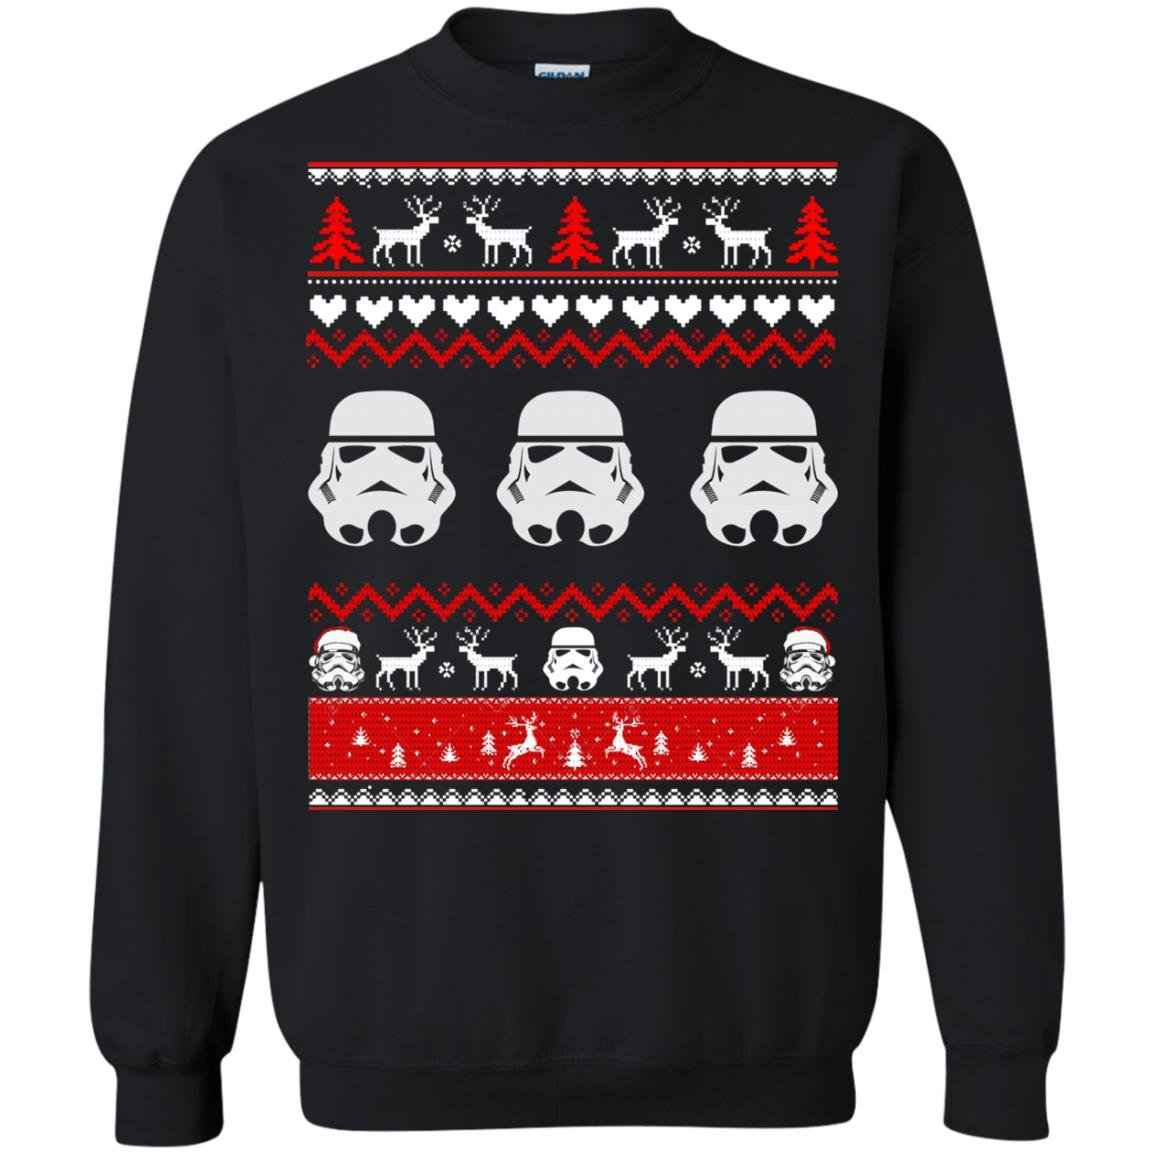 image 1728 - Stormtrooper Star Wars Ugly Christmas Sweatshirt, Shirt